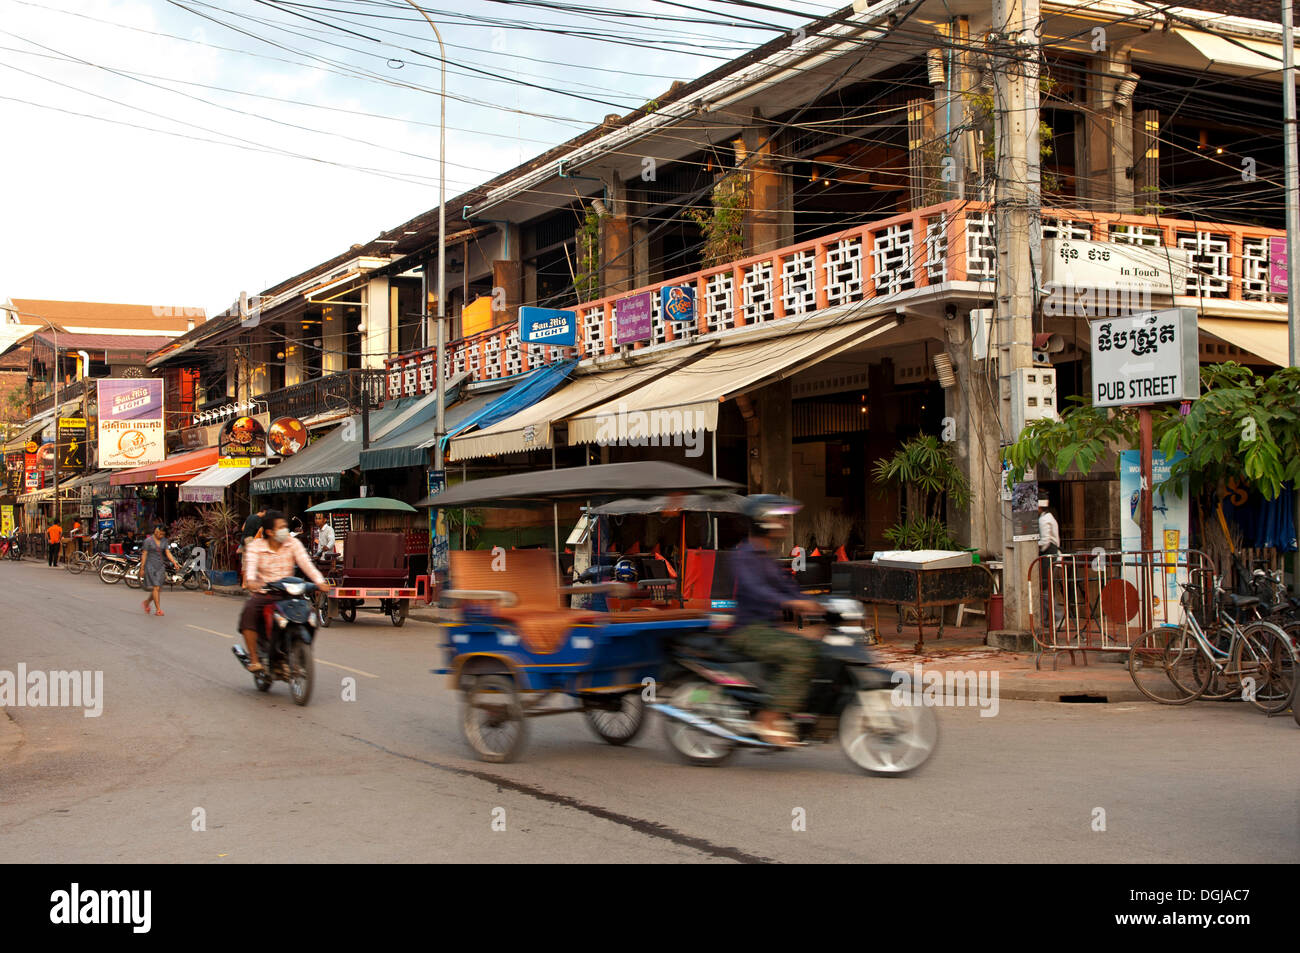 Rickshaw in traffic in front of restaurants and bars in Pub Street, Siem Reap, Siem Reap Province, Cambodia - Stock Image